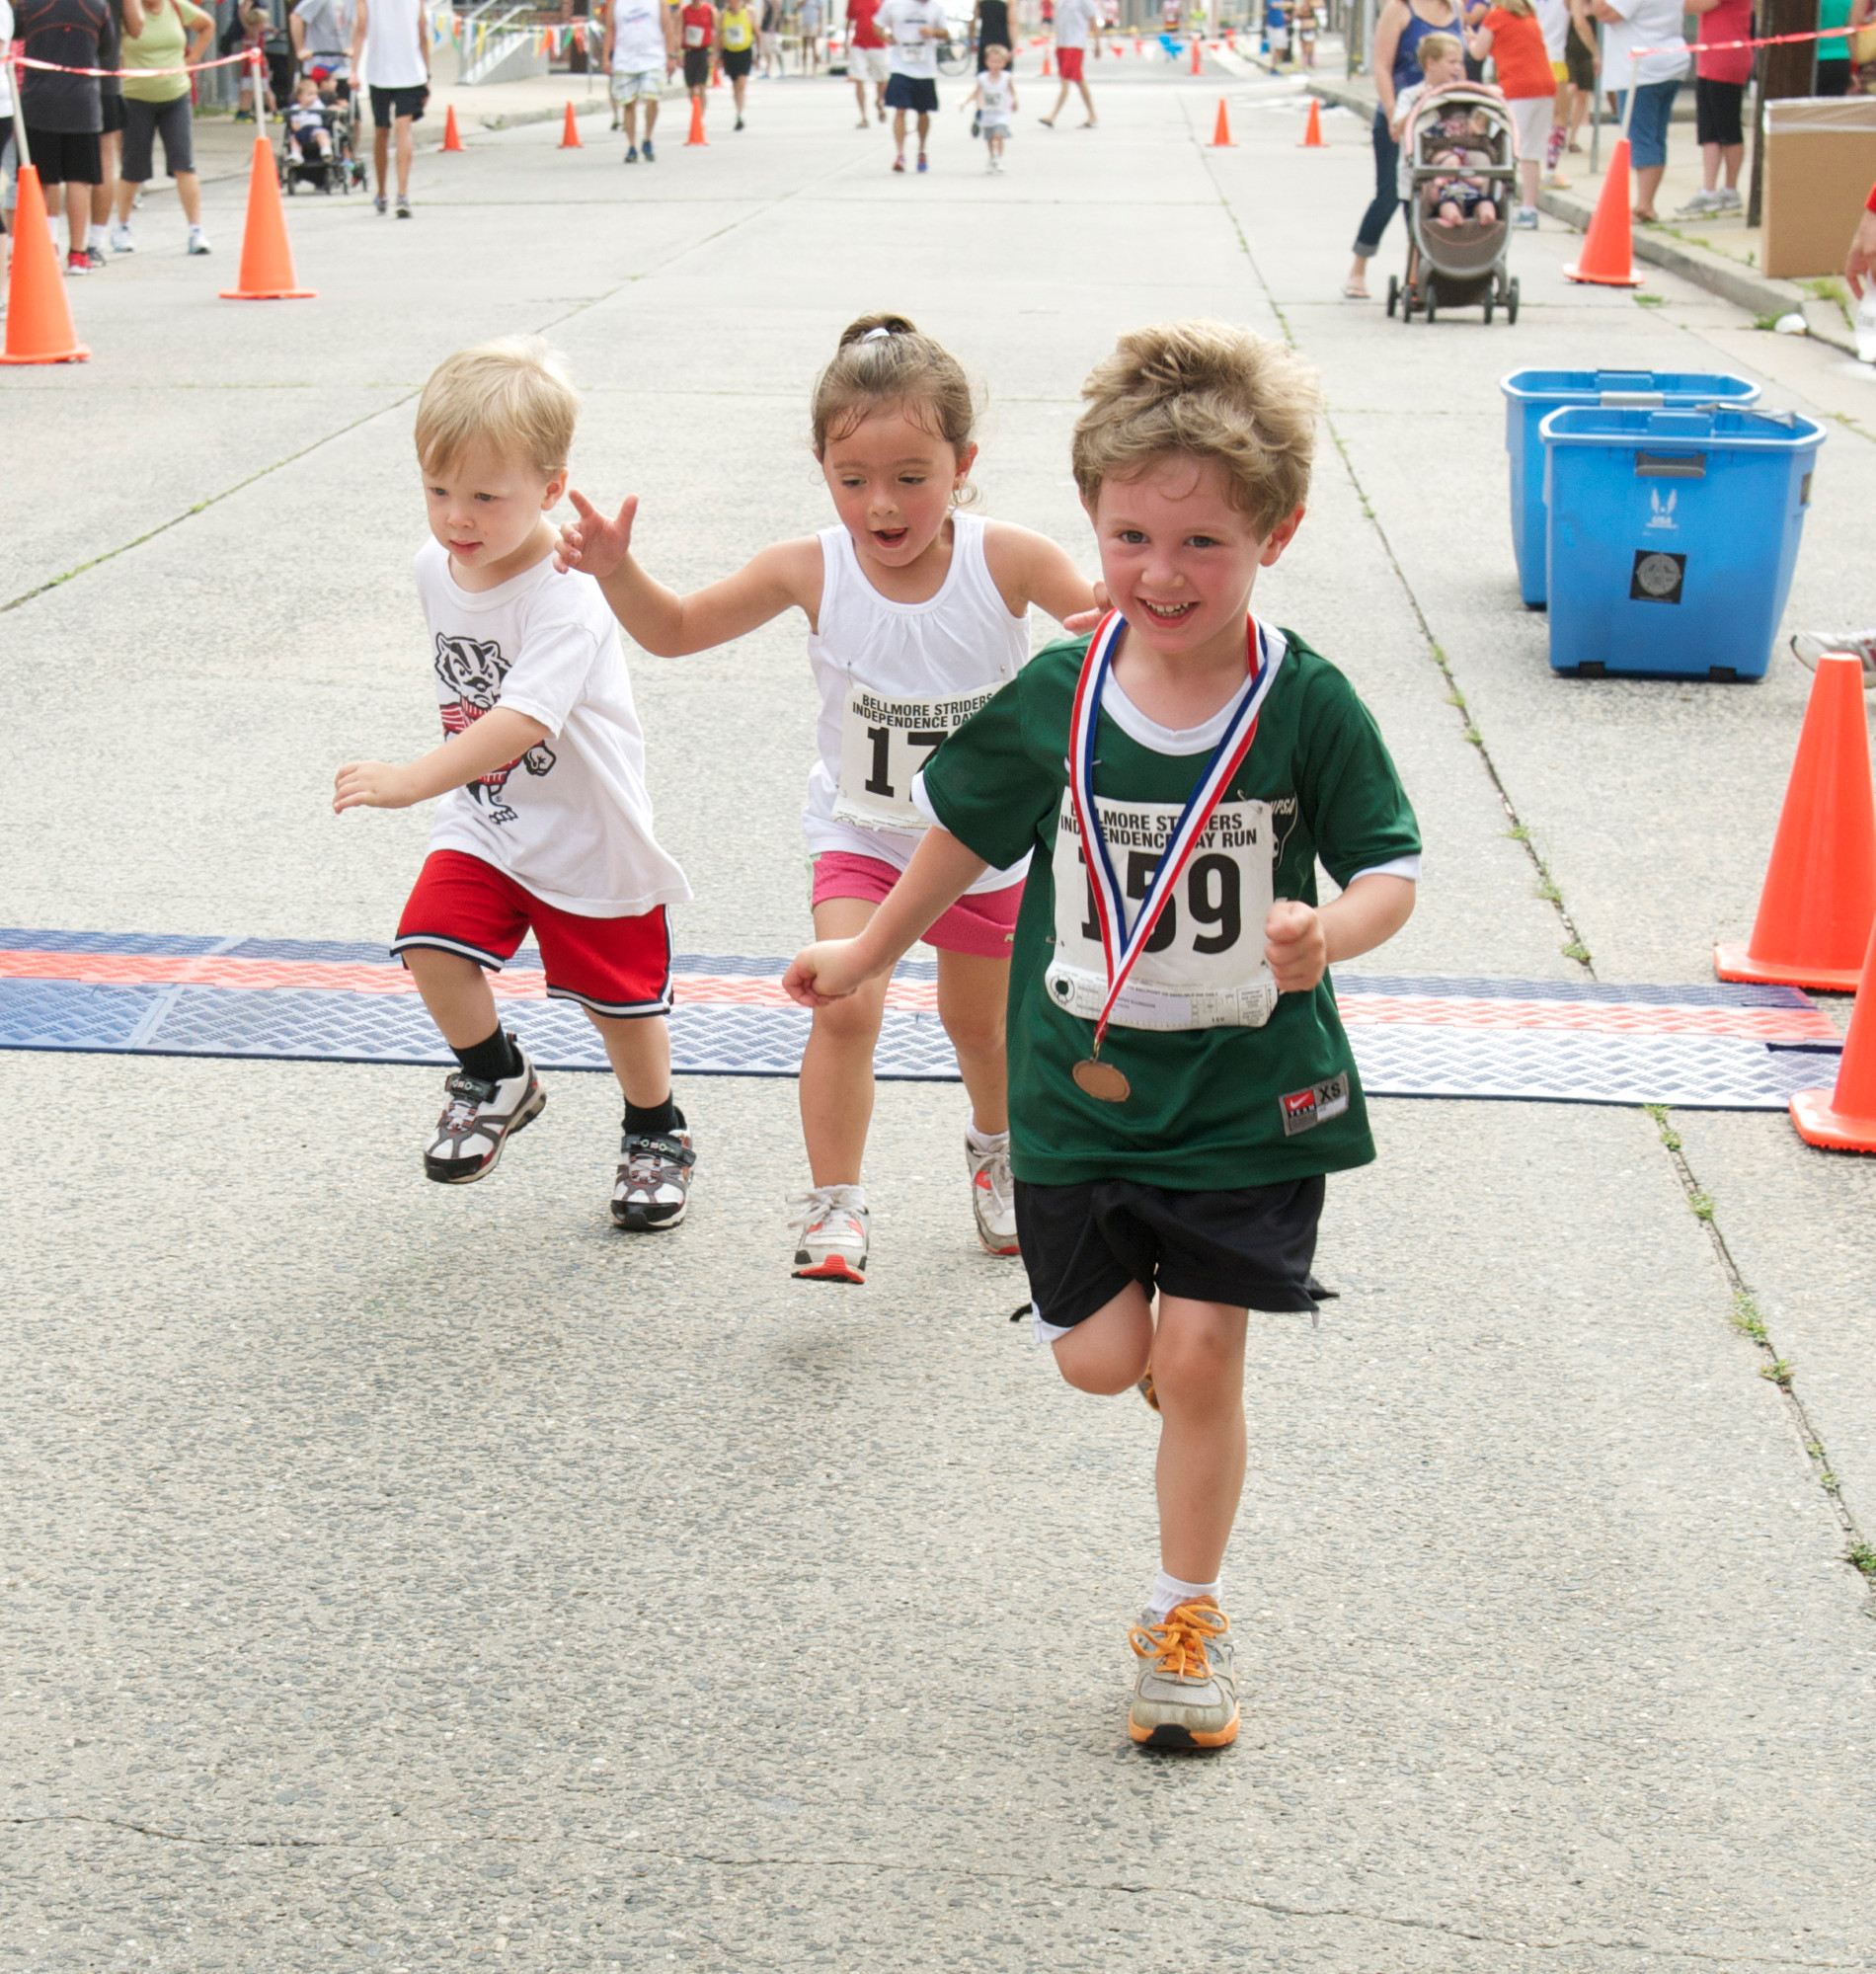 Kevin Ellington, 2, Madelyn Forquignon, 4, and Timmy Ellington. 4, crossed the finish line in 14 minutes and 10 seconds in the Bellmore Striders' one-mile run.